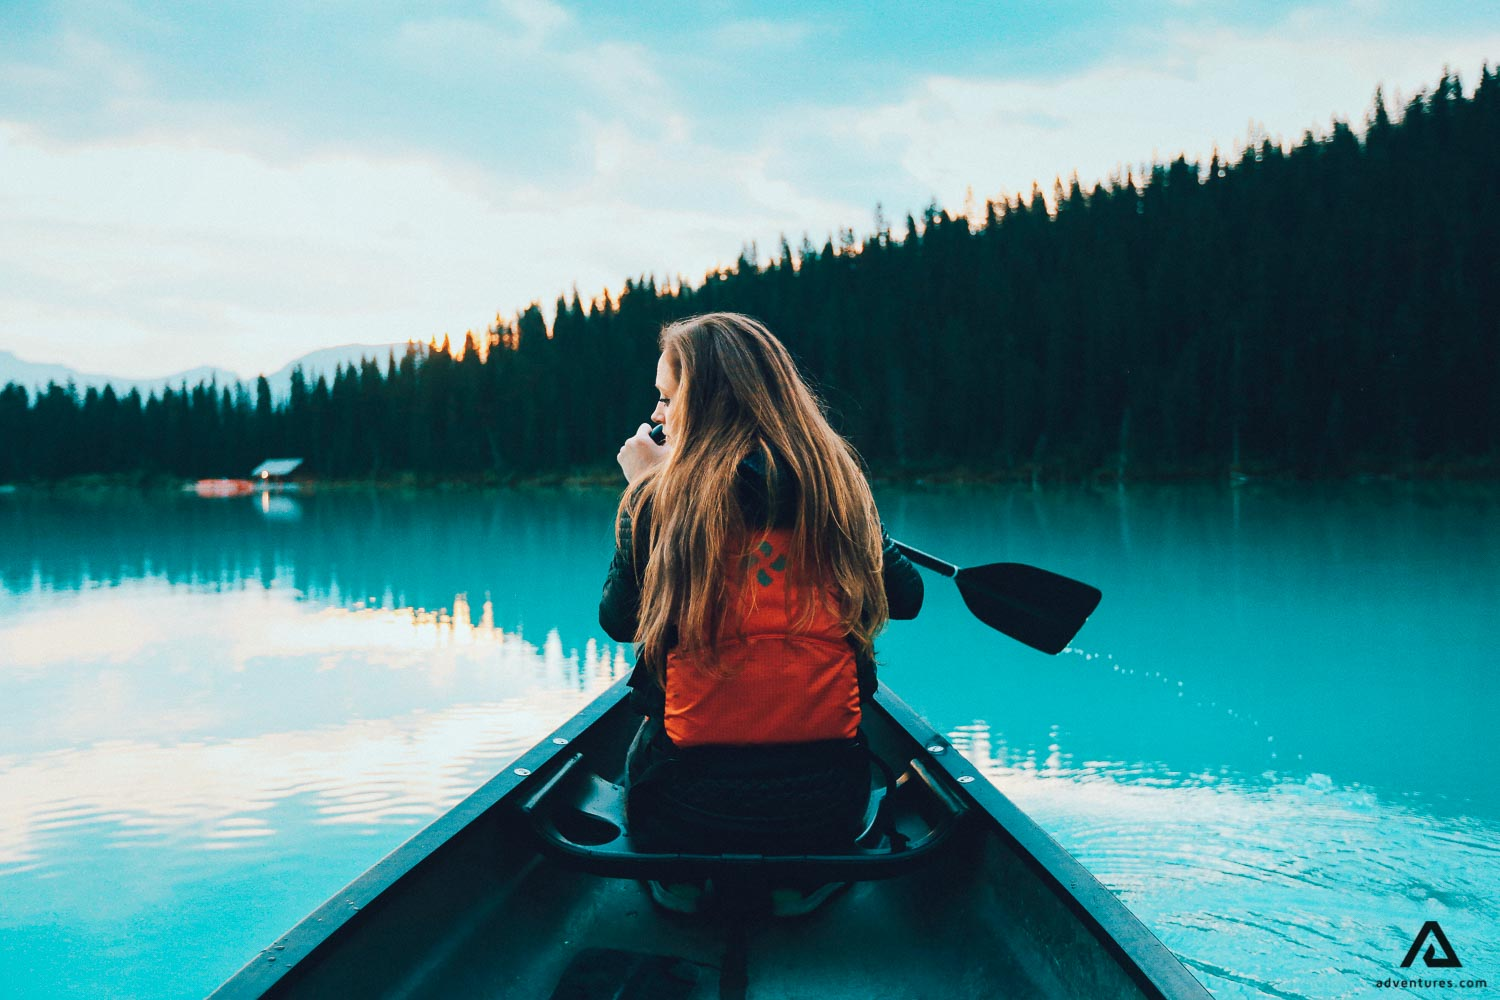 Girl canoeing on the lake in Canada